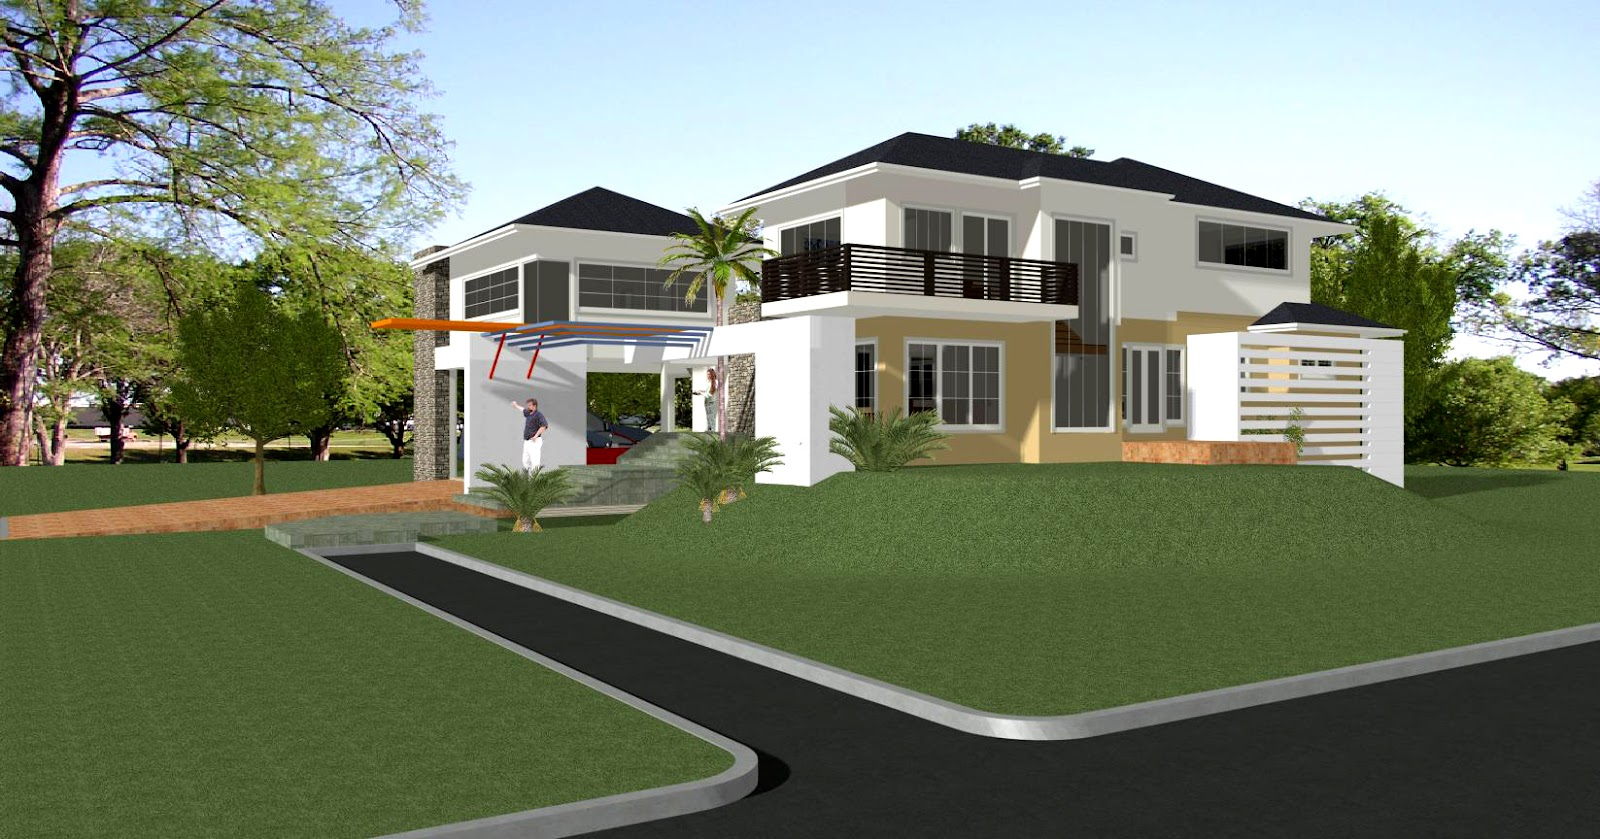 House designs in the philippines in iloilo by erecre group realty design and construction - House to home designs ...